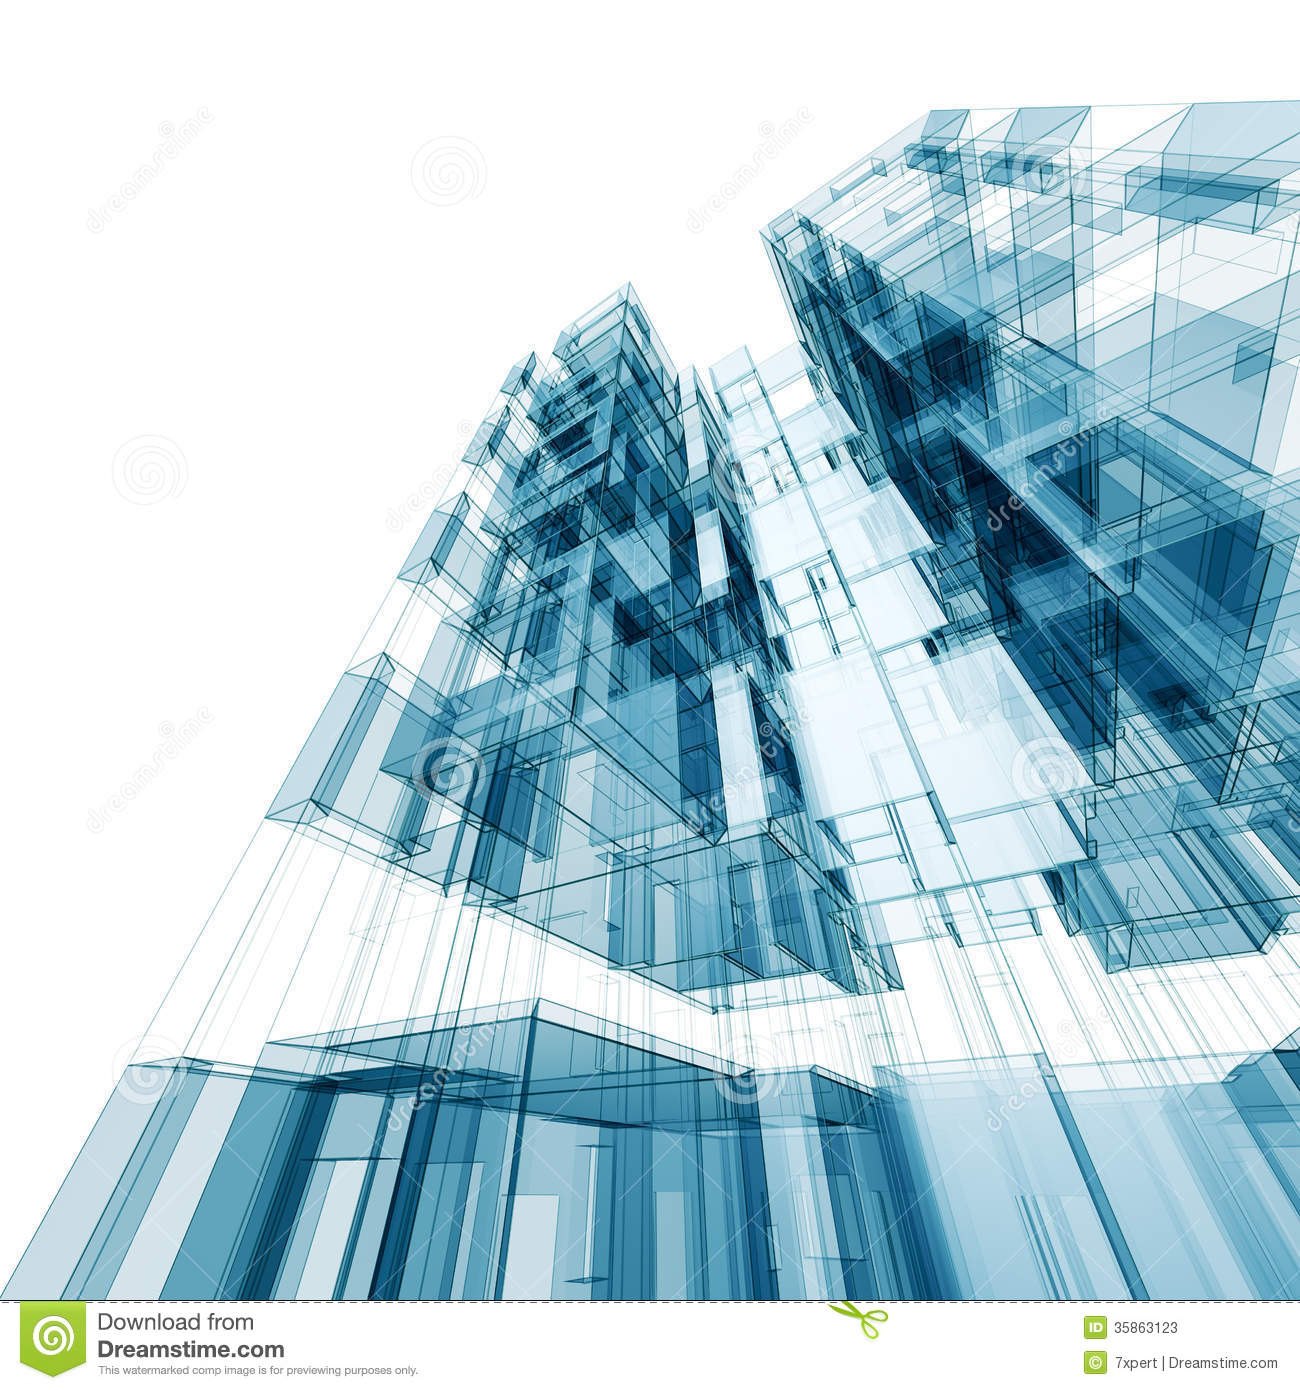 Architecture Design: Abstract Architecture Stock Photos